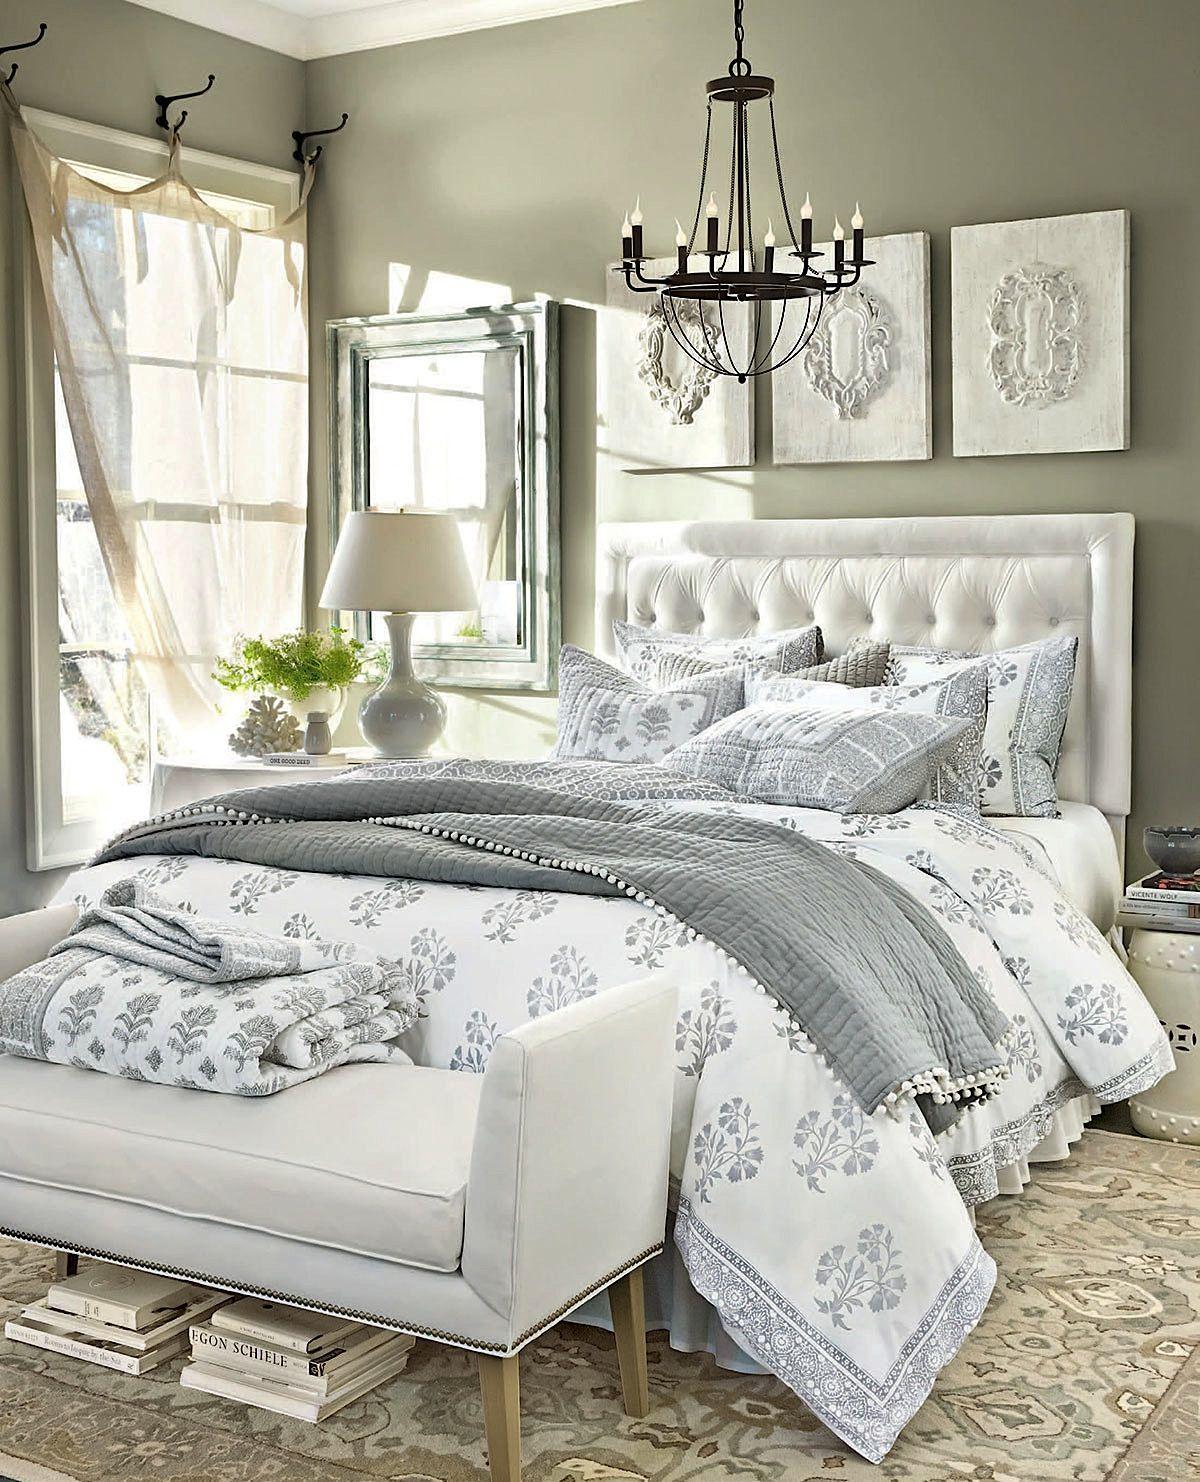 bedrooms | white bedroom decor, bedrooms and gray